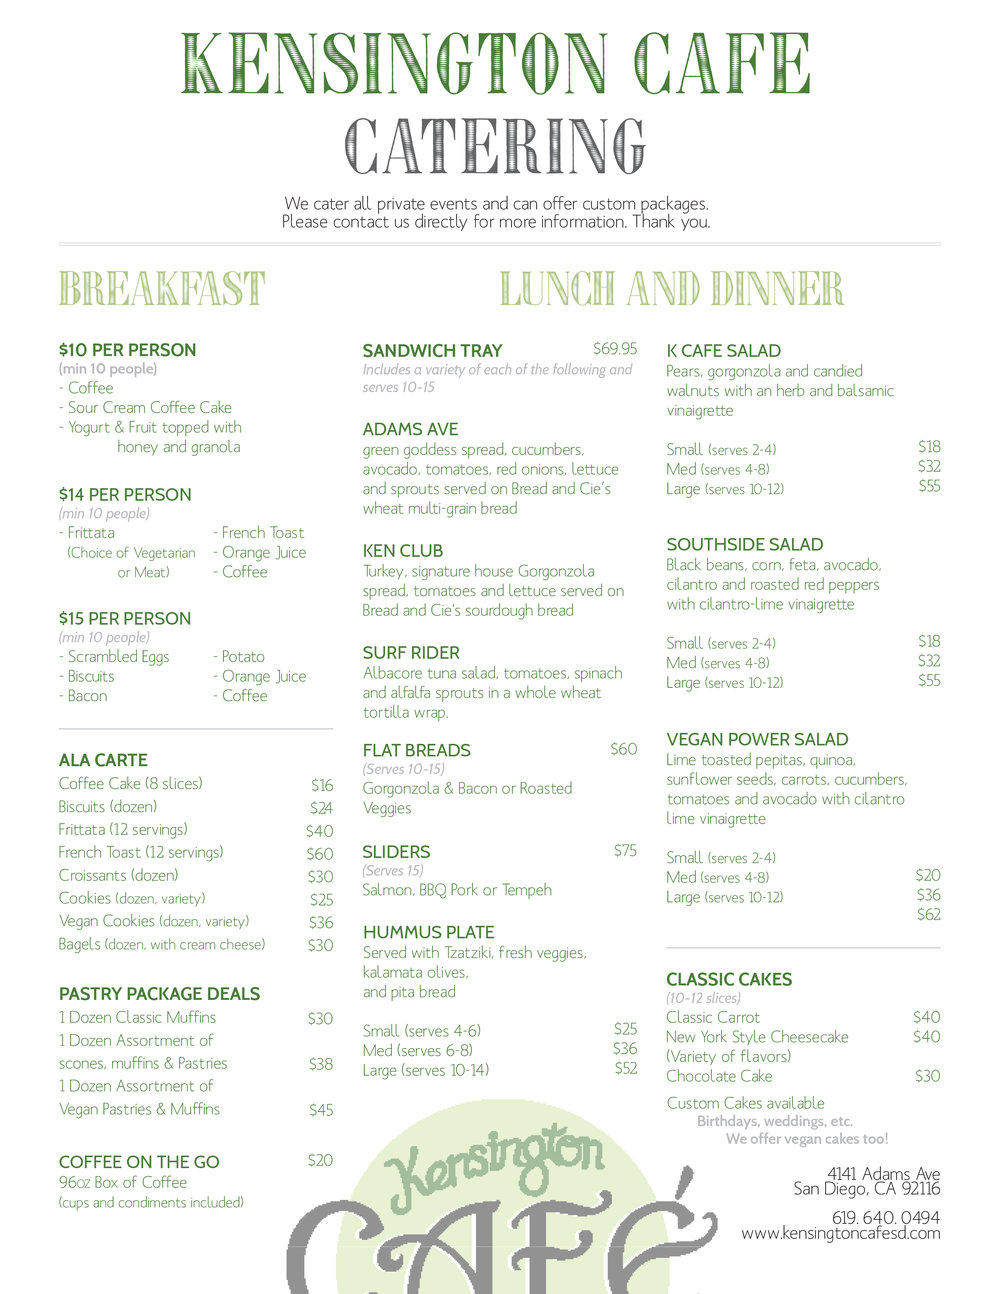 Kensington Cafe Catering Menu 2.0 (print) (1).jpg